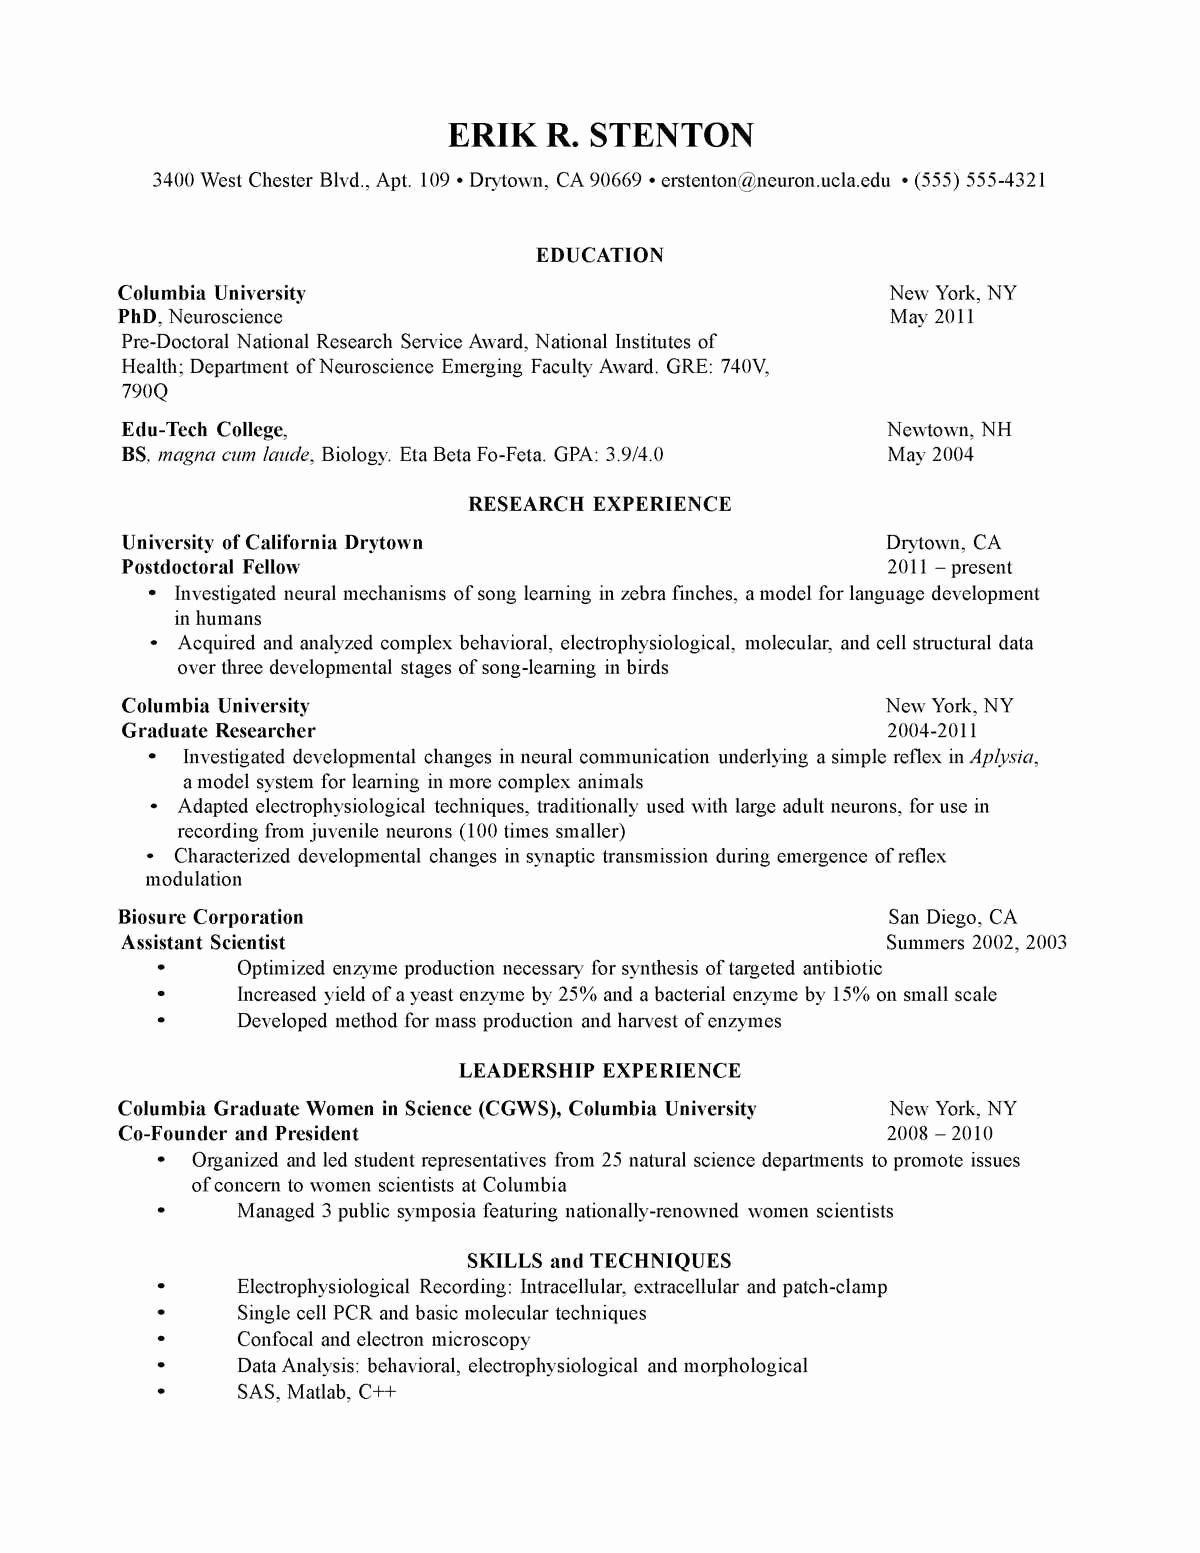 Graduate School Cv Template Awesome 3 4 Sample Cv for Graduate School Admission